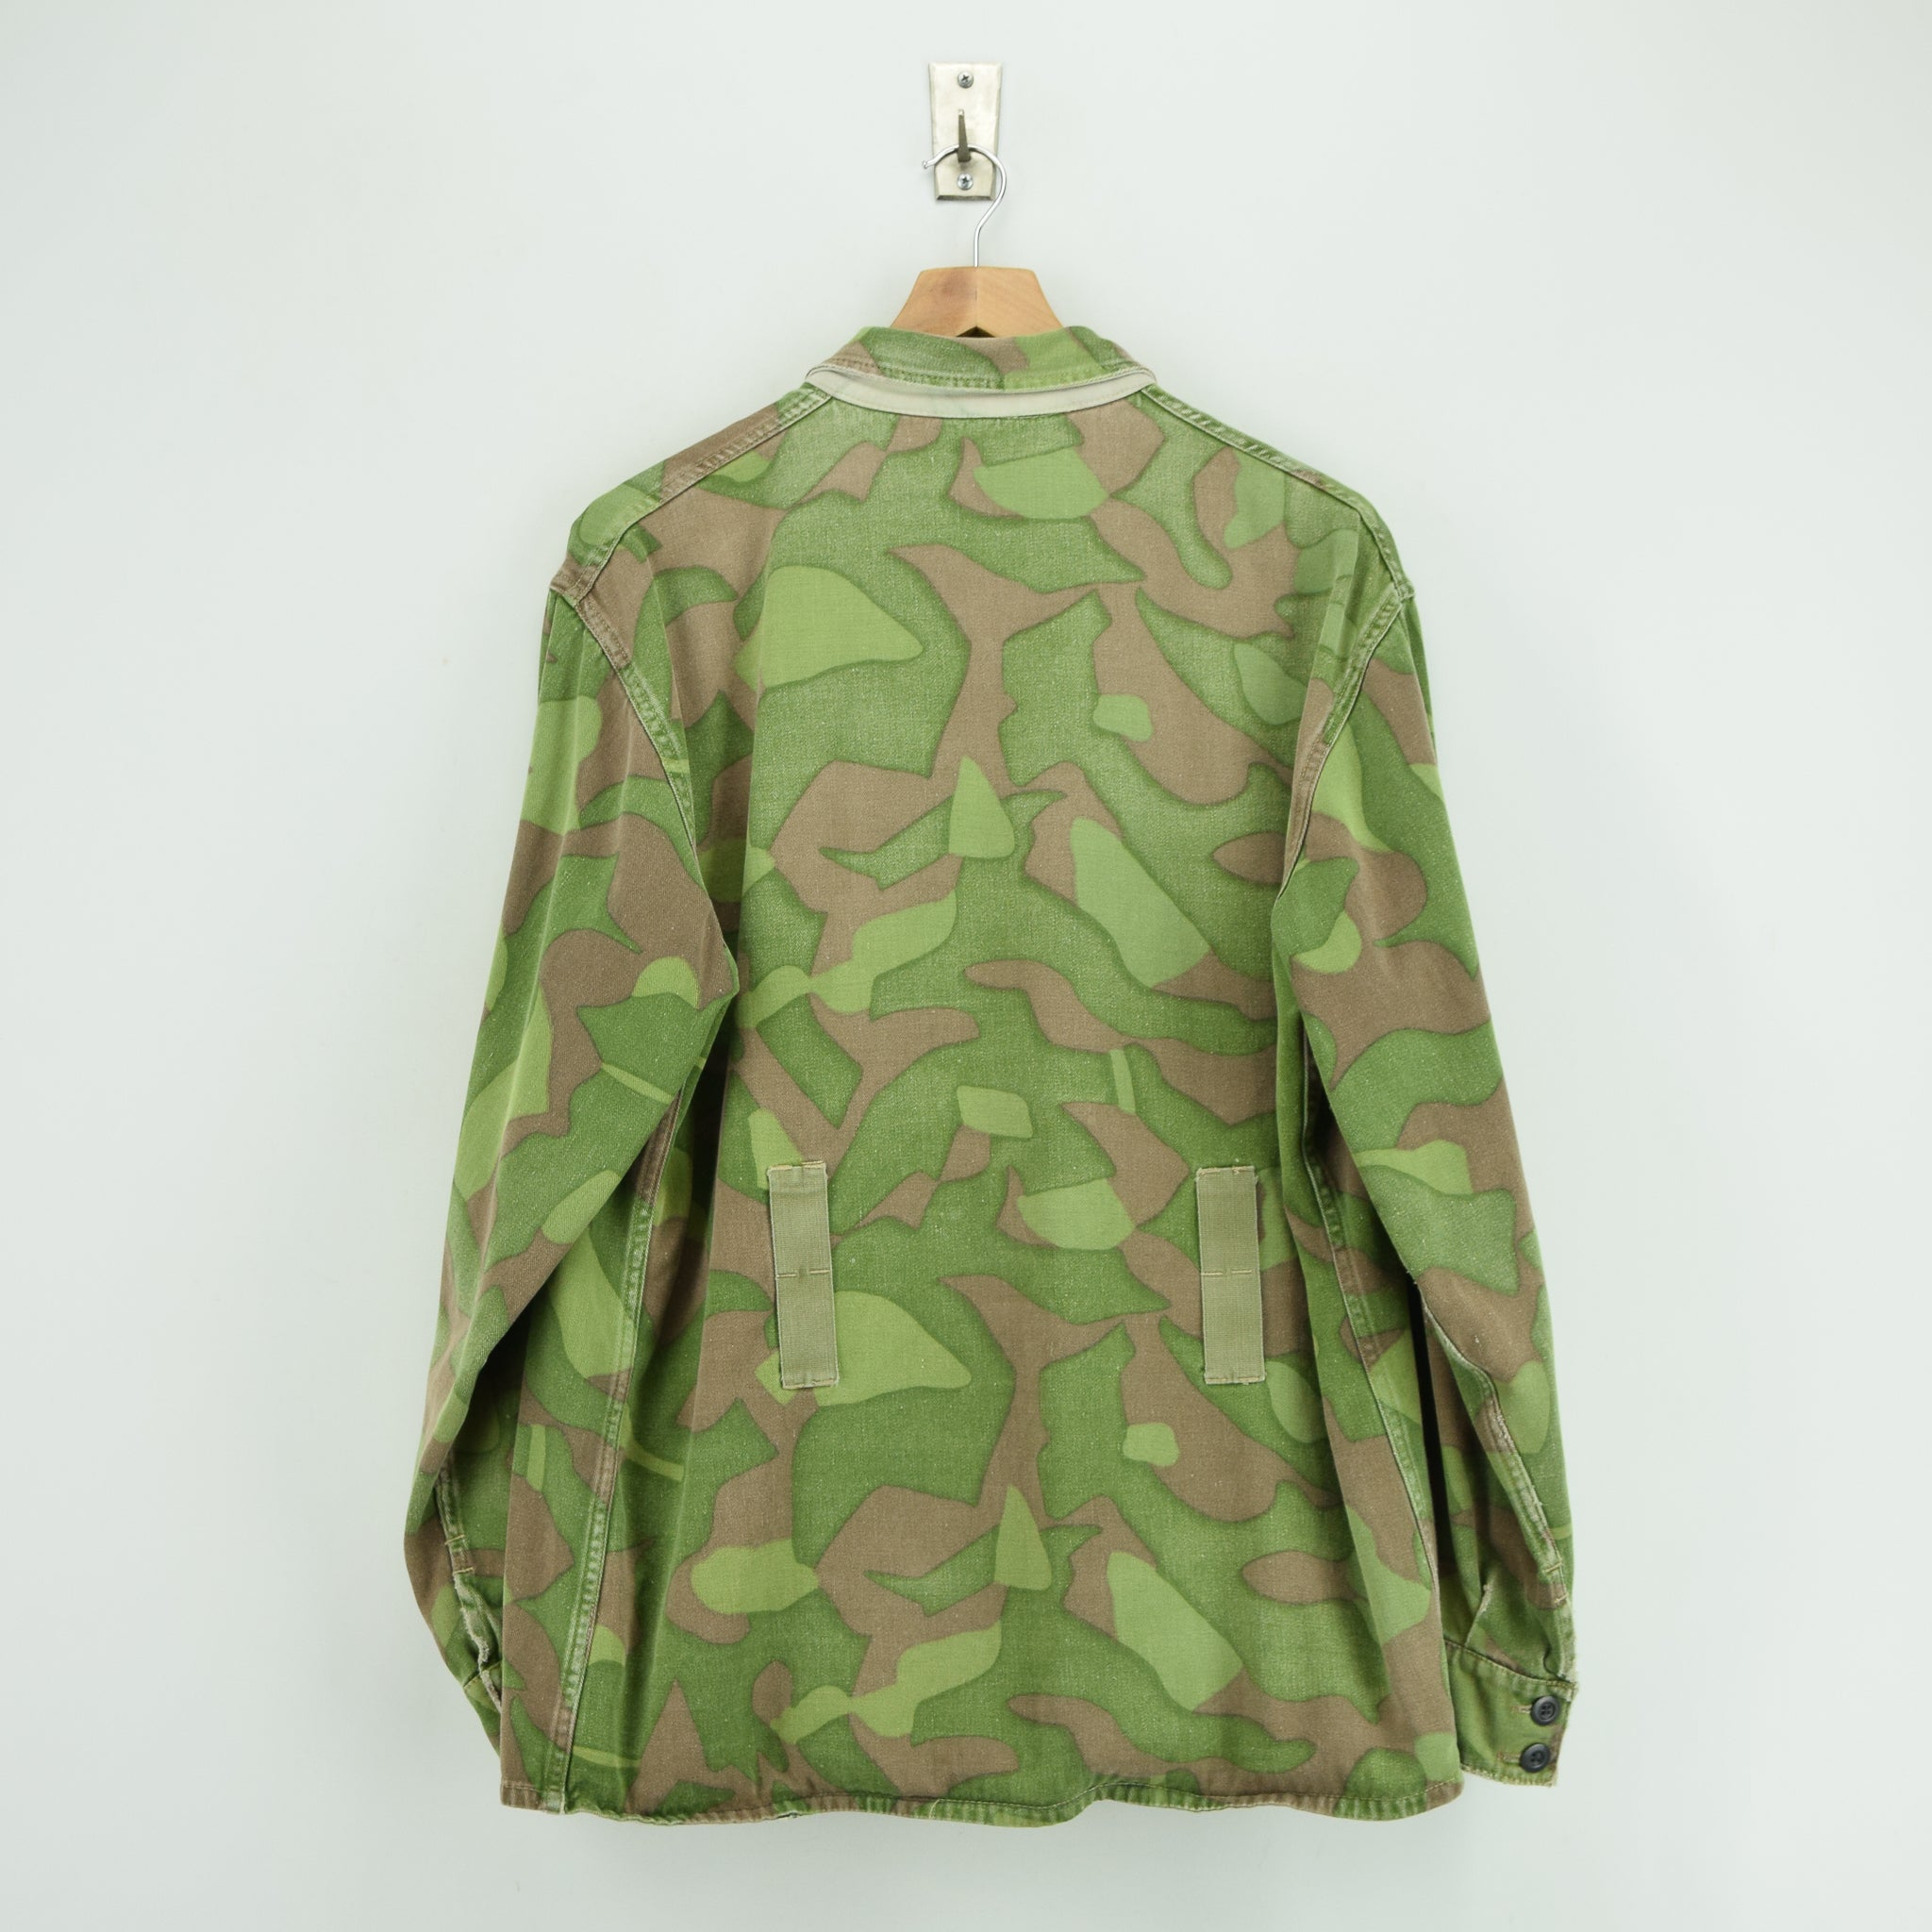 Vintage 60s Military Finnish Army Green Camo Mountain Field Jacket XL back